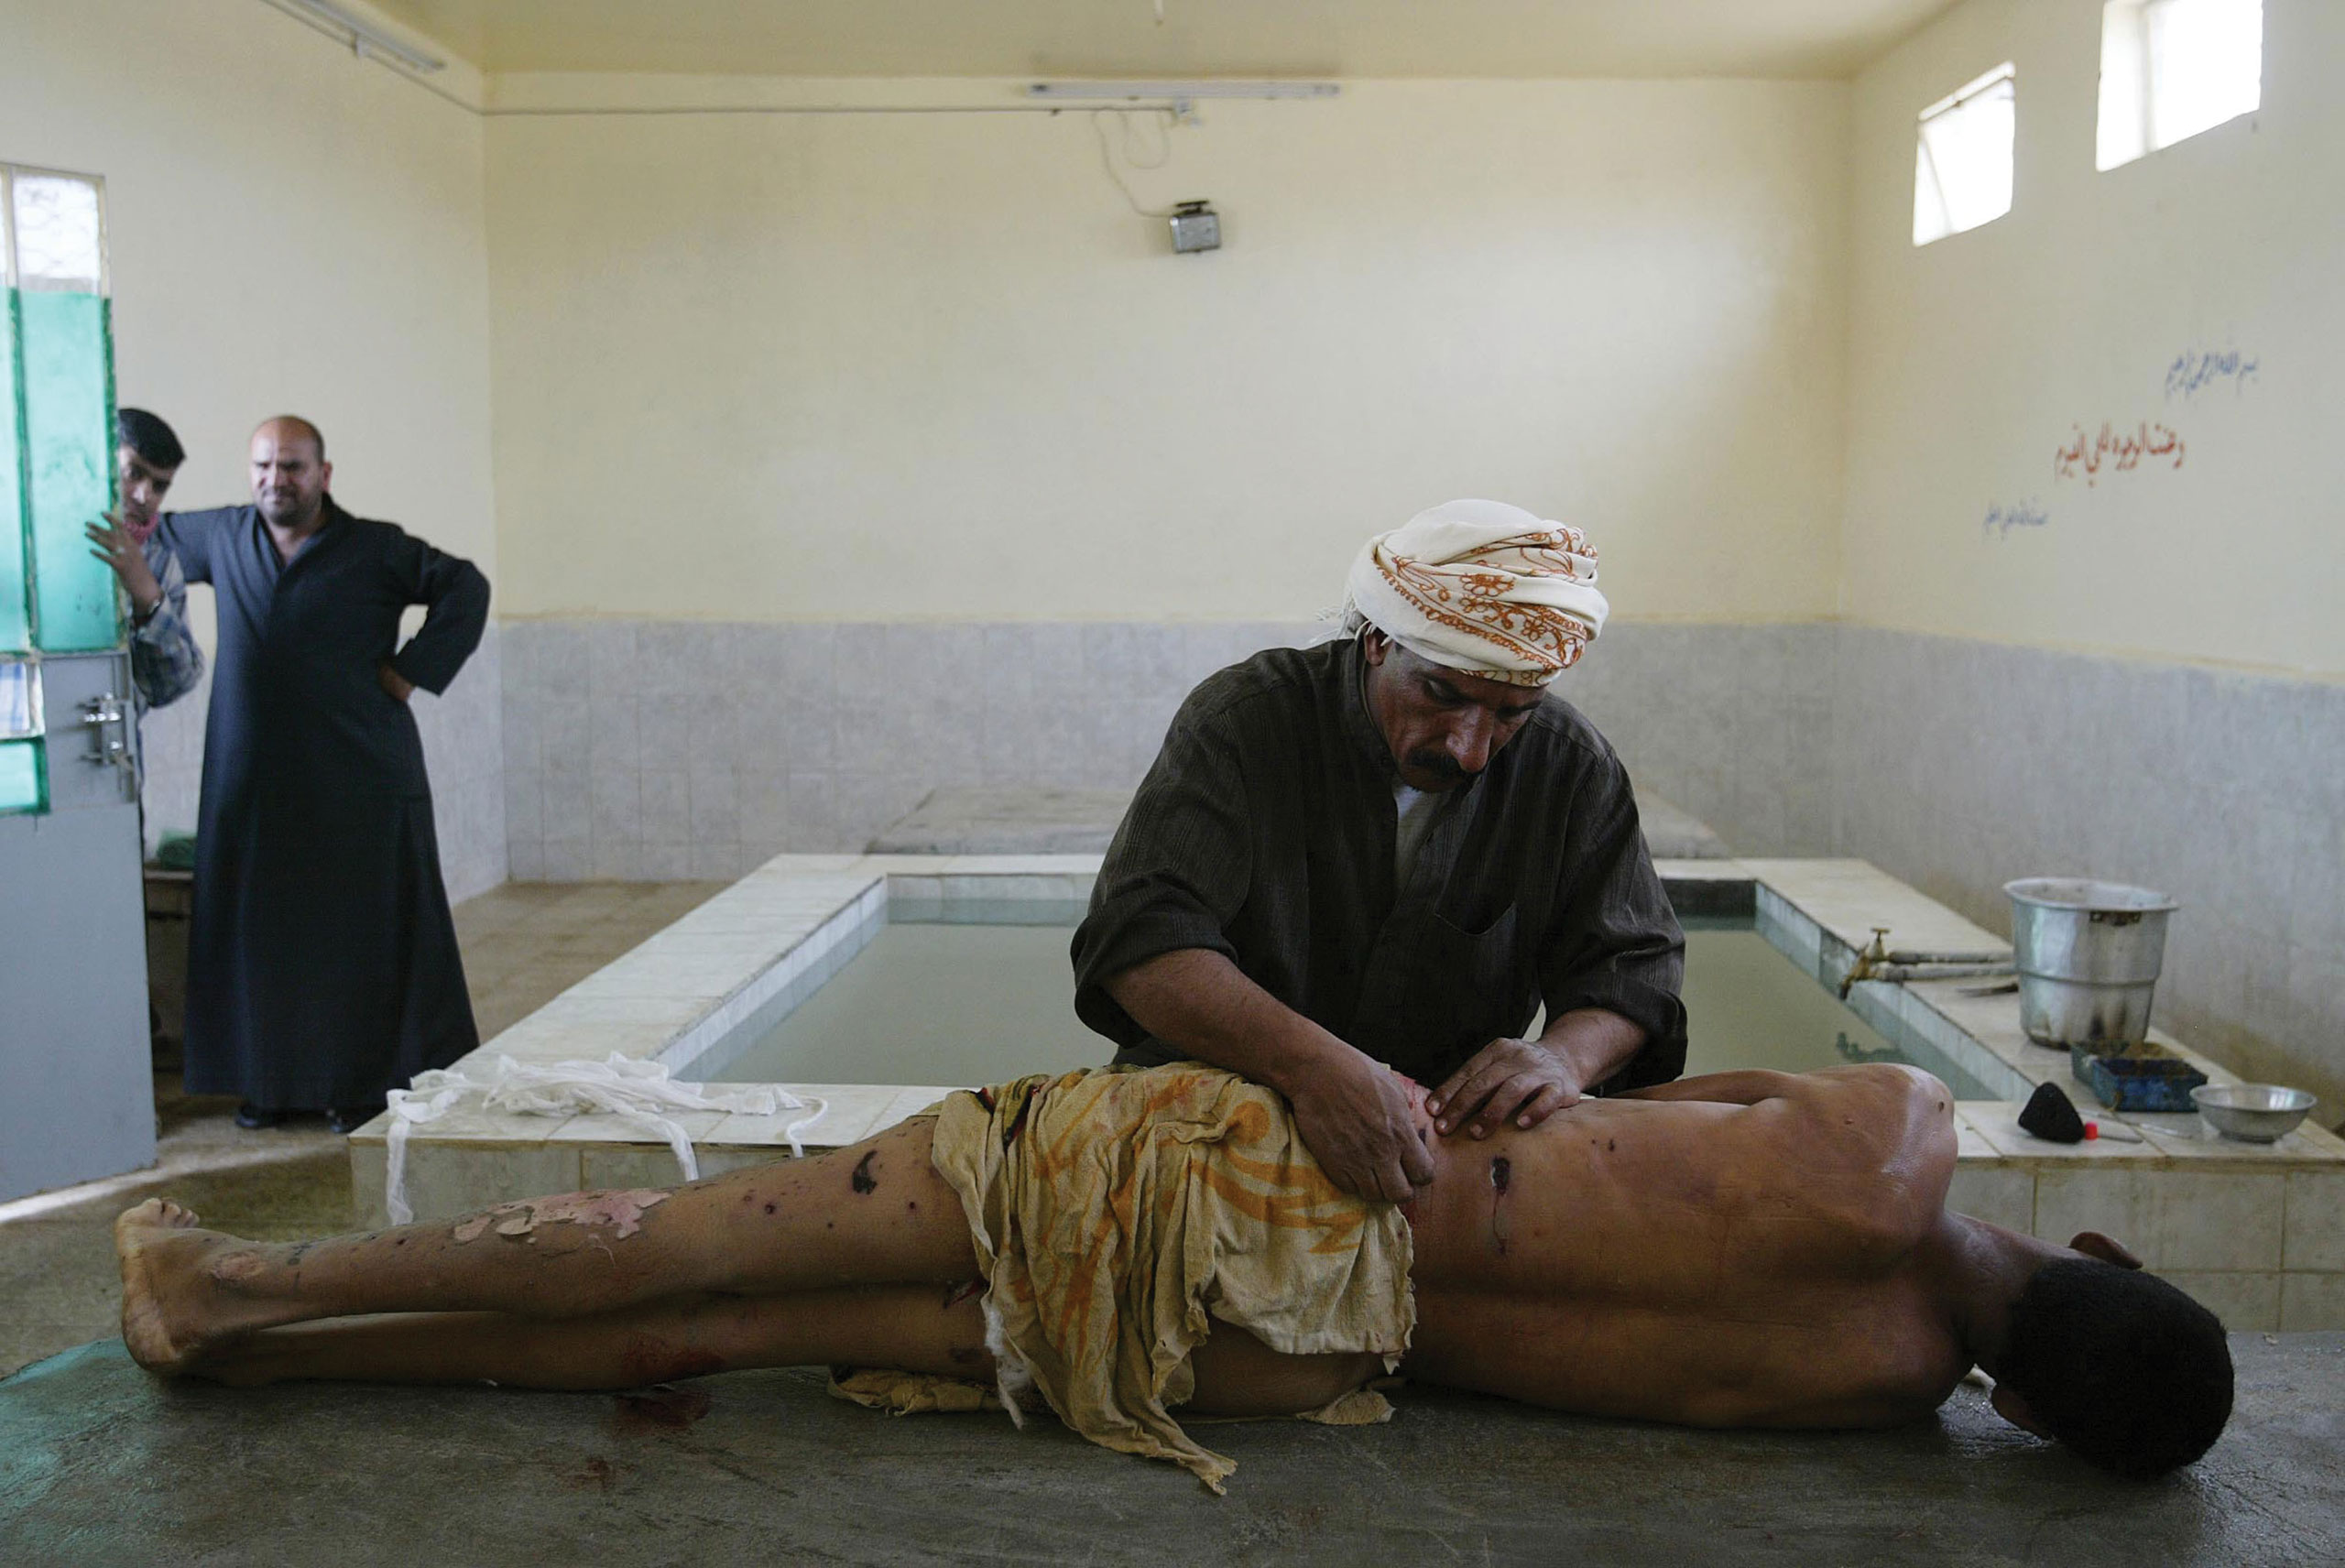 Ali Hadi, a professional body washer, prepares the body of a bombing victim for Muslim burial as the man's relatives watch in Najaf, Iraq, on March 3, 2004.